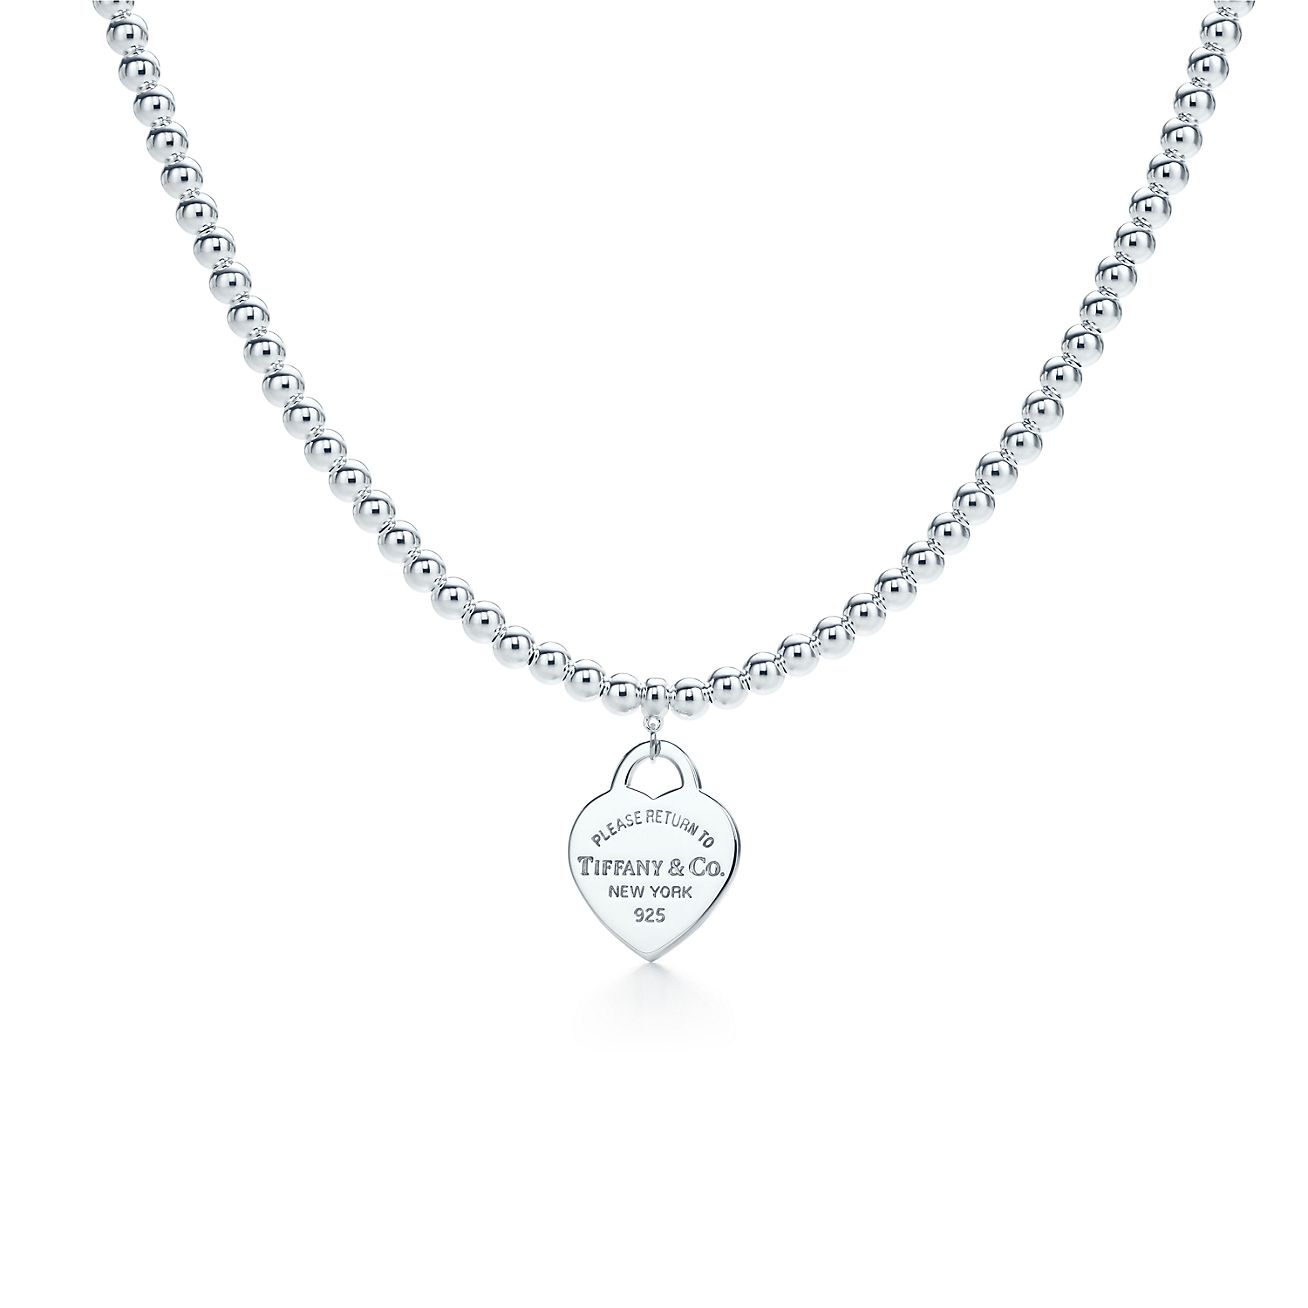 Return to tiffany small heart tag in sterling silver on a bead return to tiffanybead necklace aloadofball Images